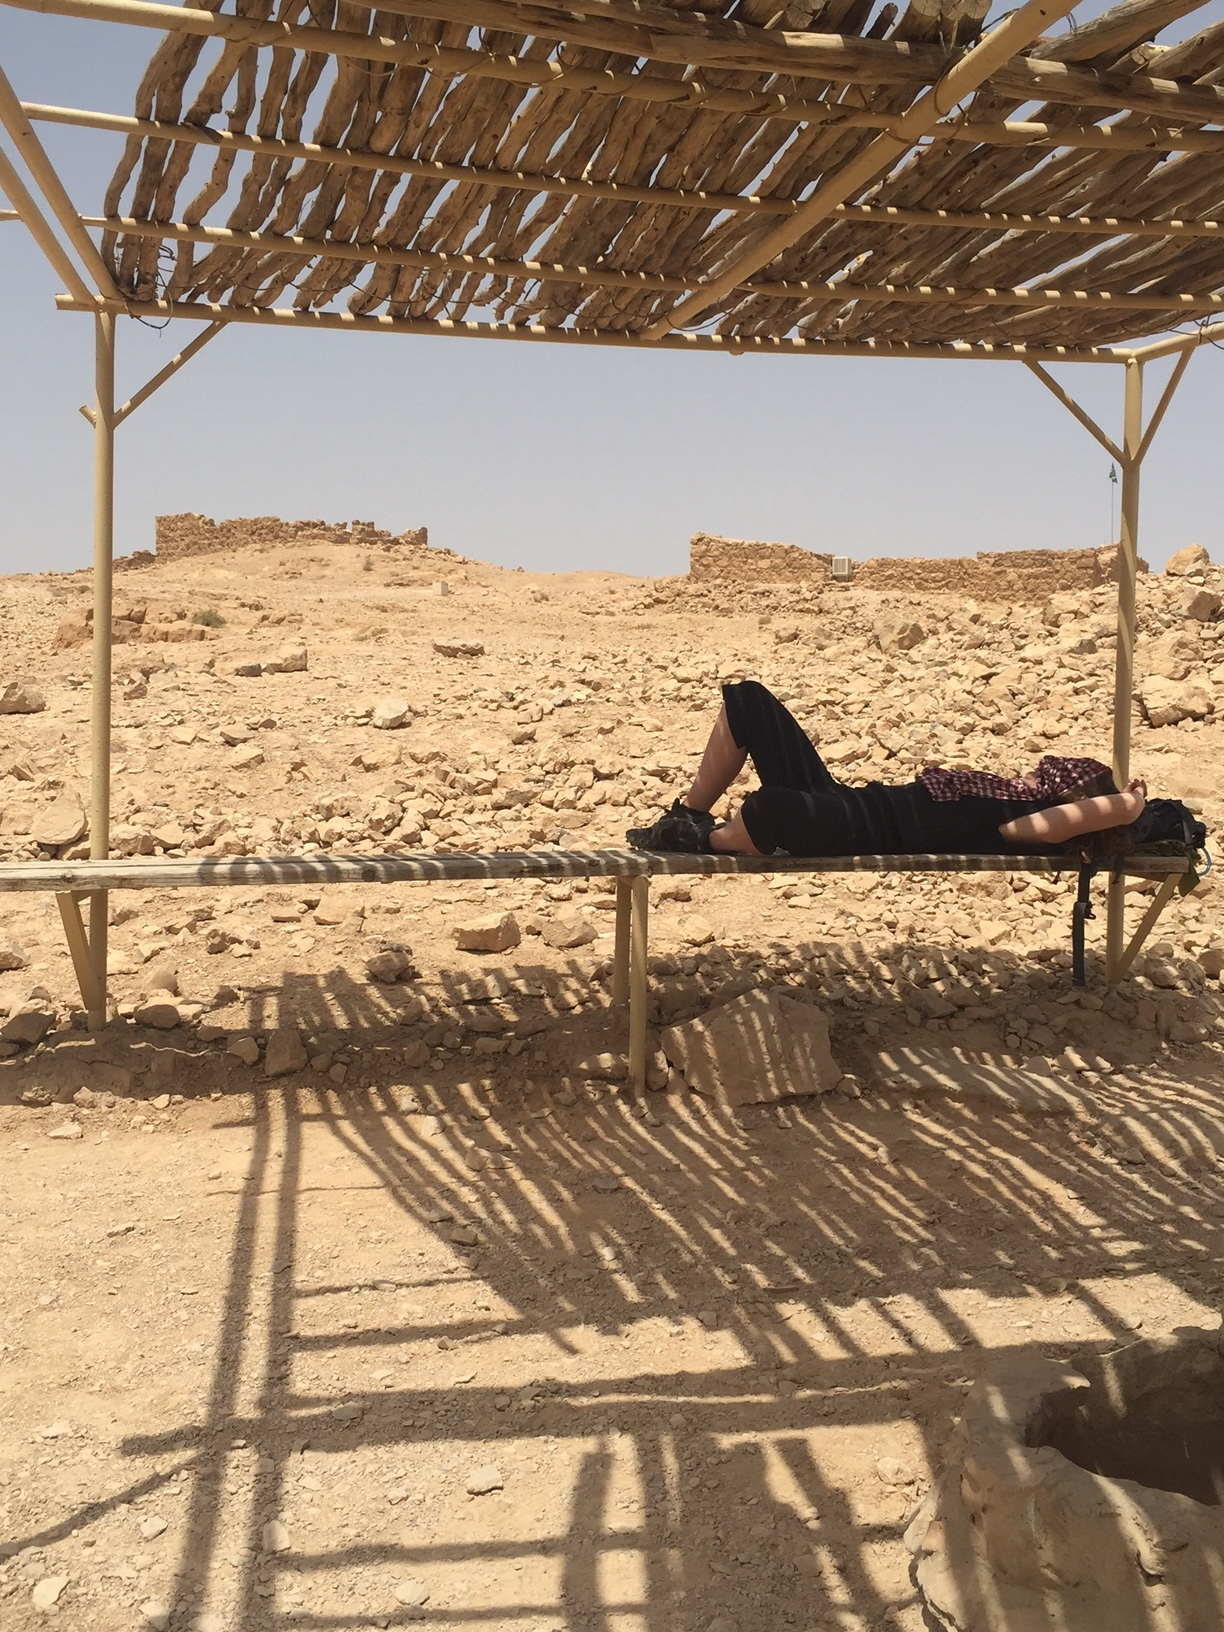 Jill taking a break at Masada, Israel